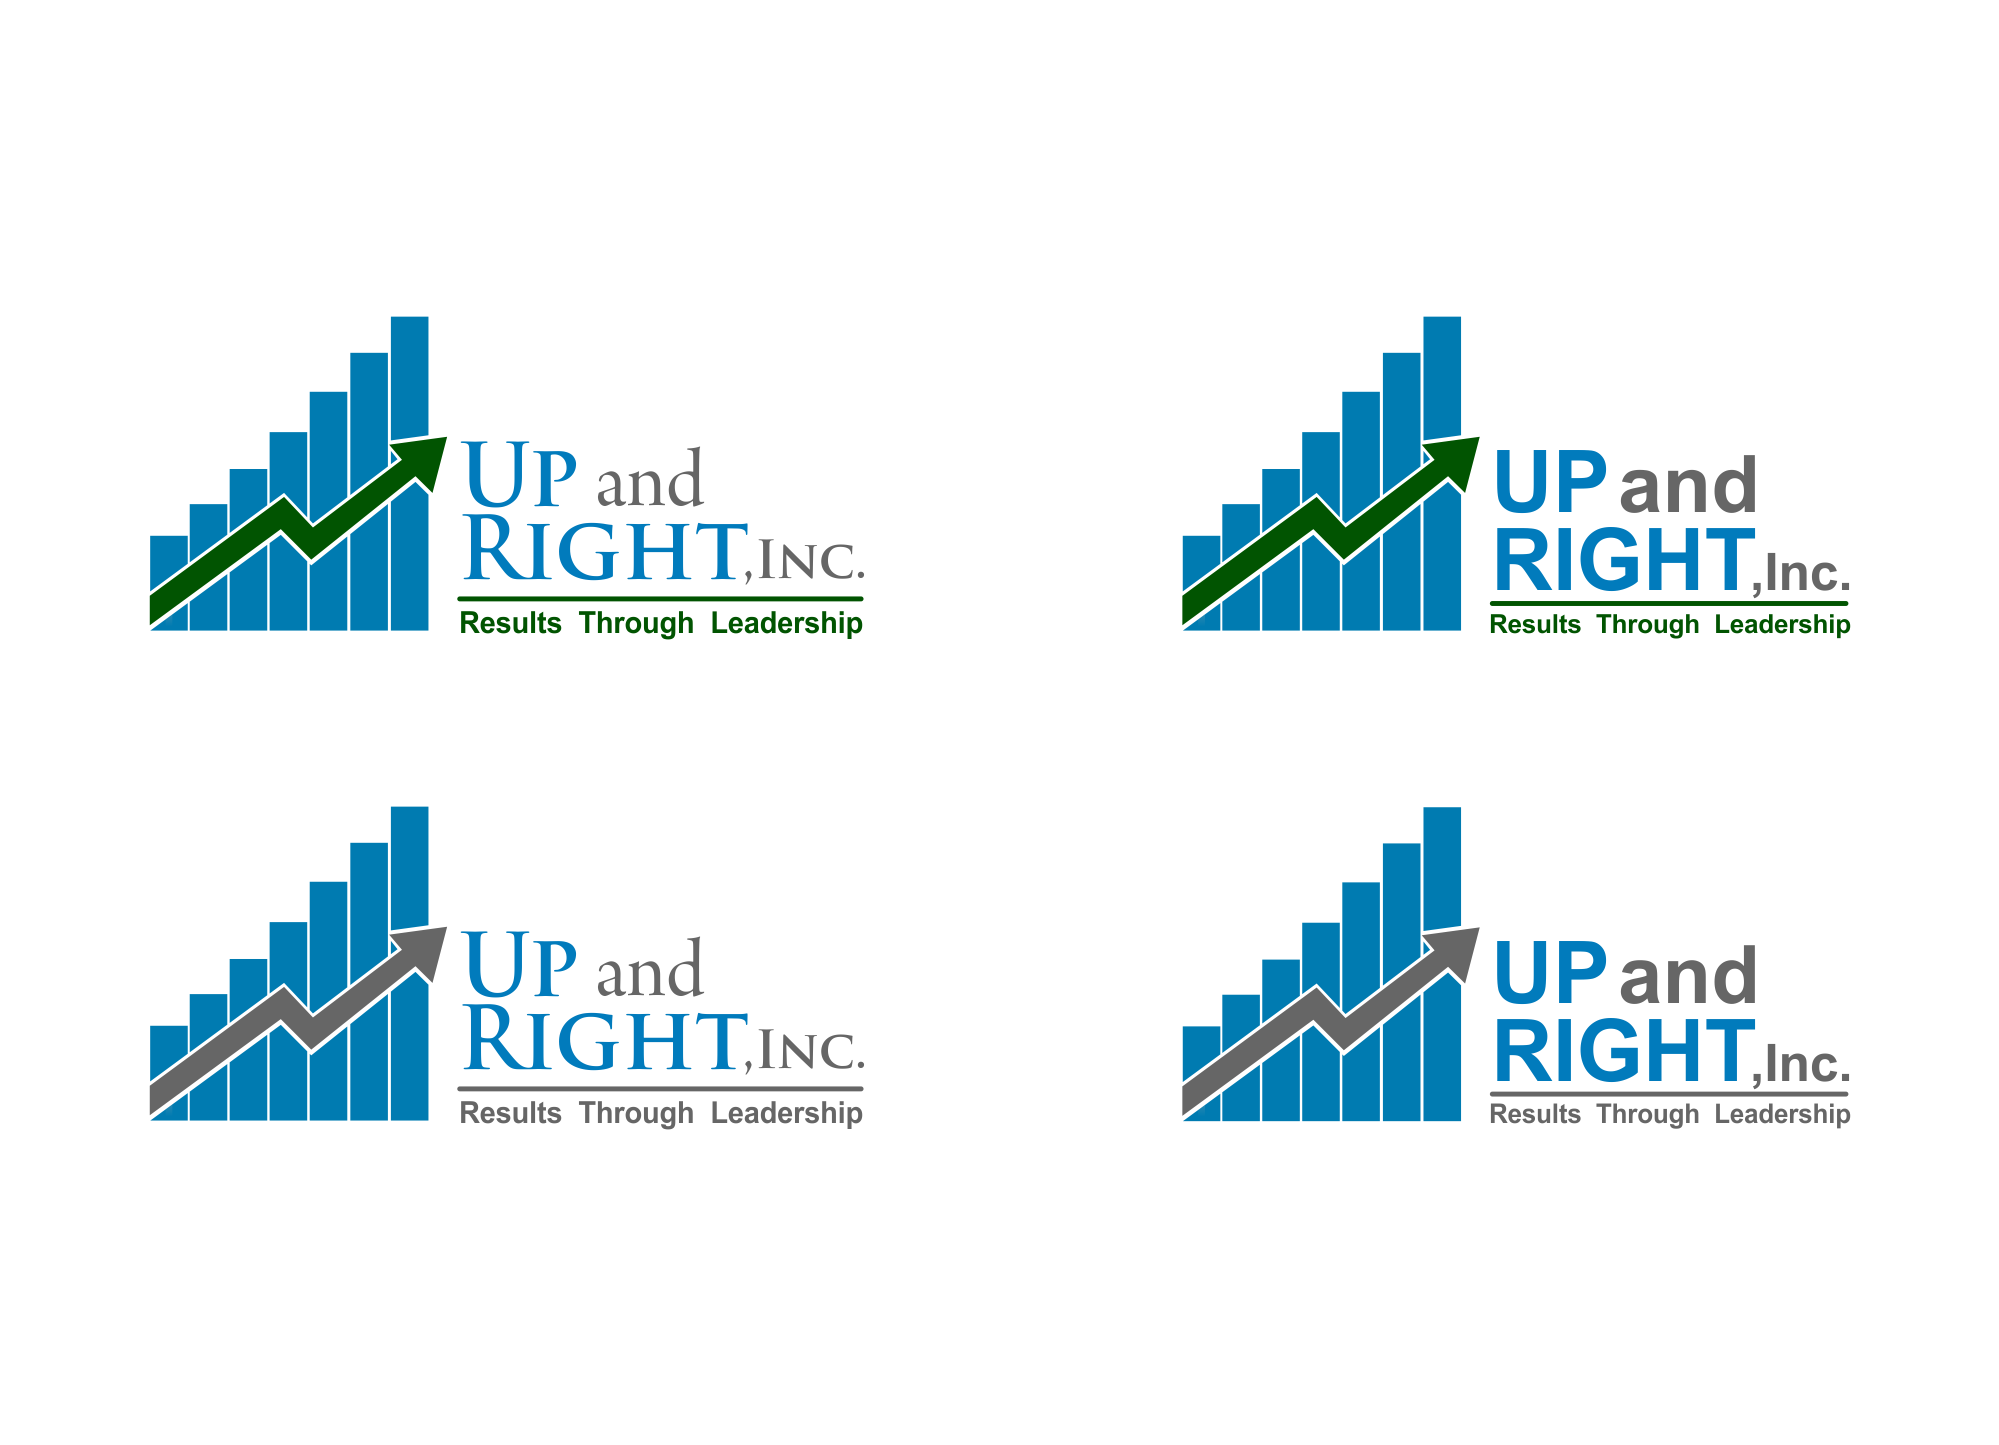 Leadership/Business Consulting Company needs an attractive logo tying great ldrship to great results